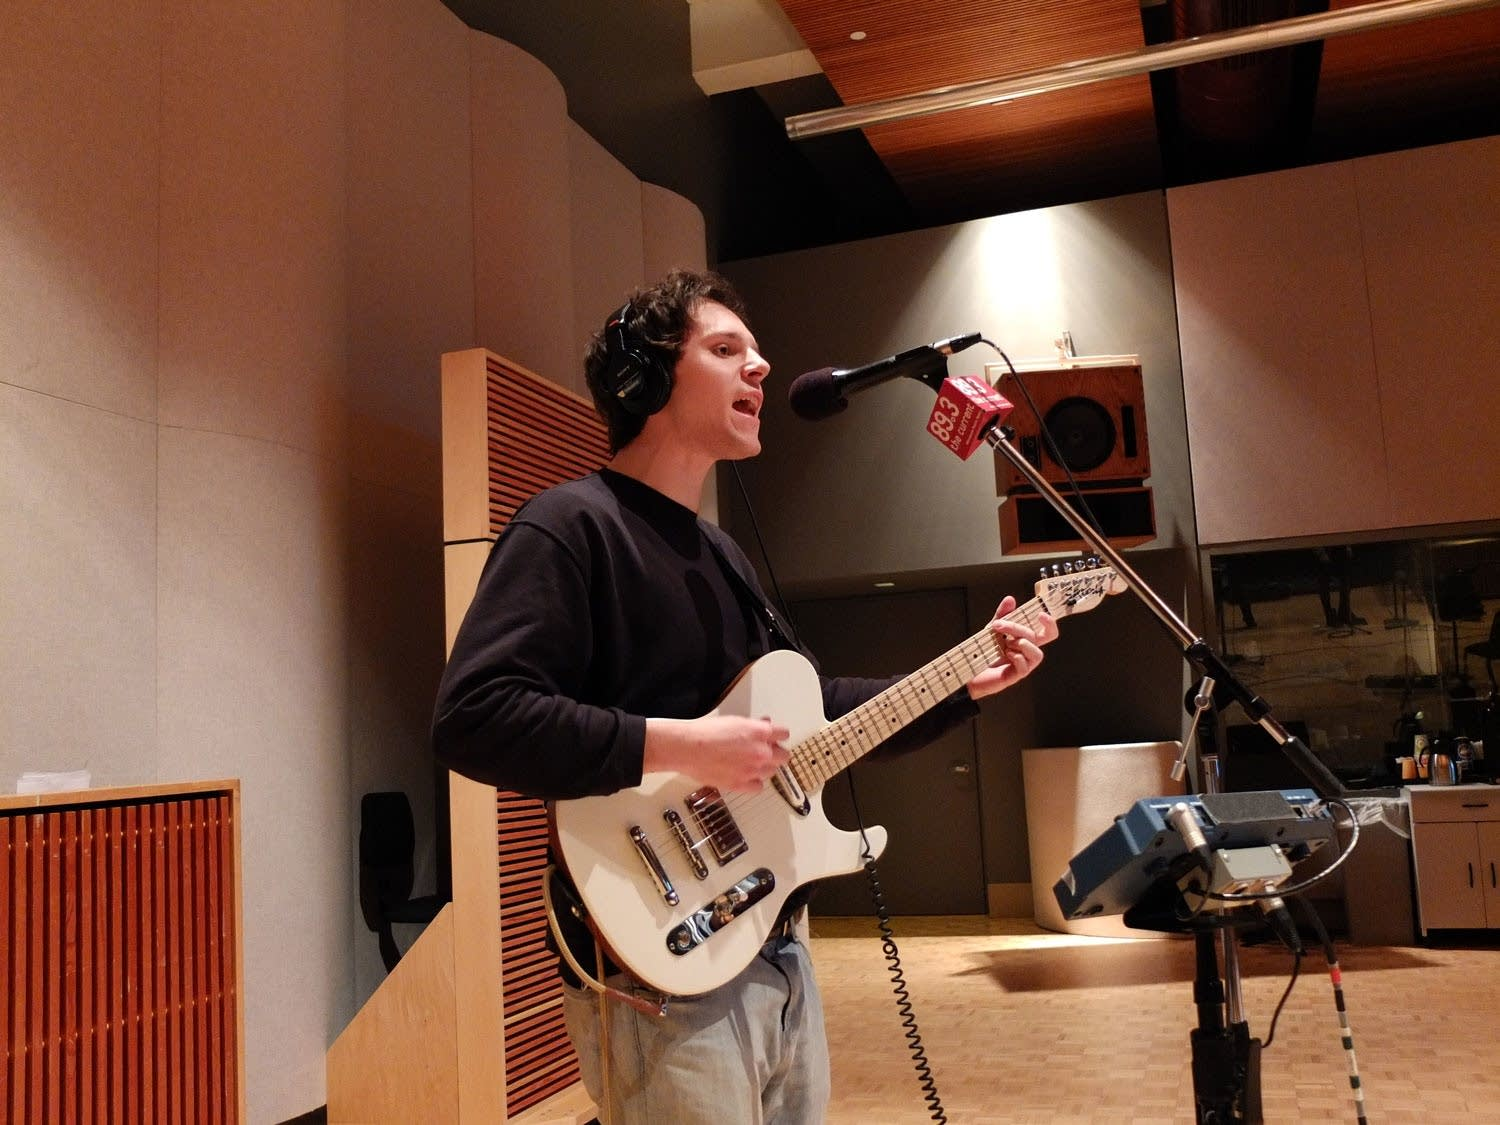 Dominic Corso of The Orwells performs in The Current studio